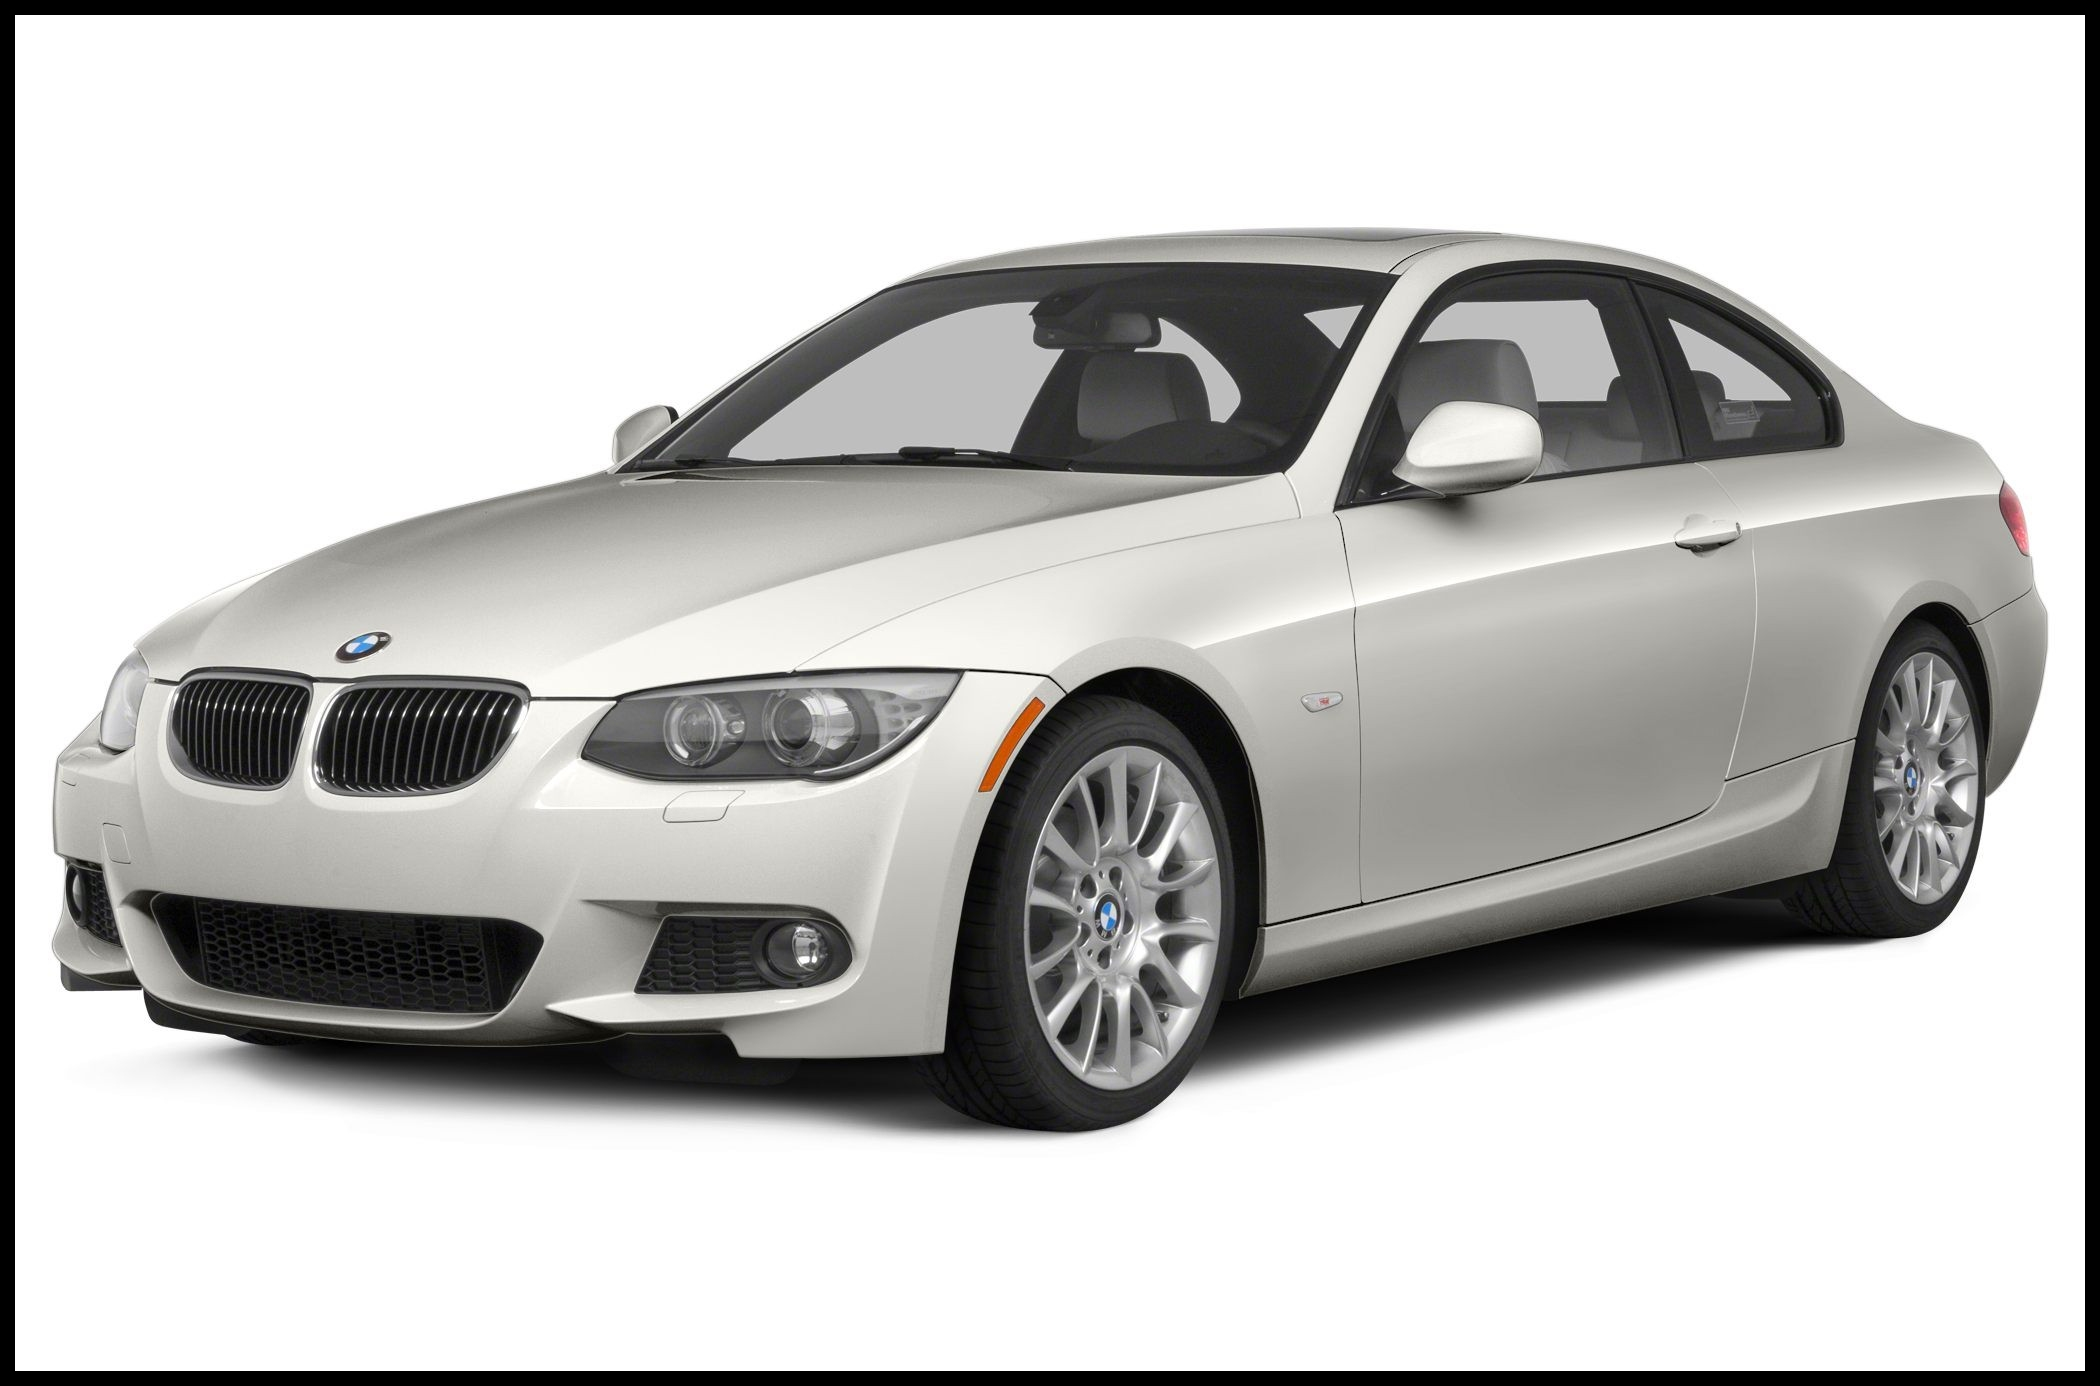 2011 Bmw 328i Xdrive Coupe Lovely 2013 Bmw 328 New Car Test Drive